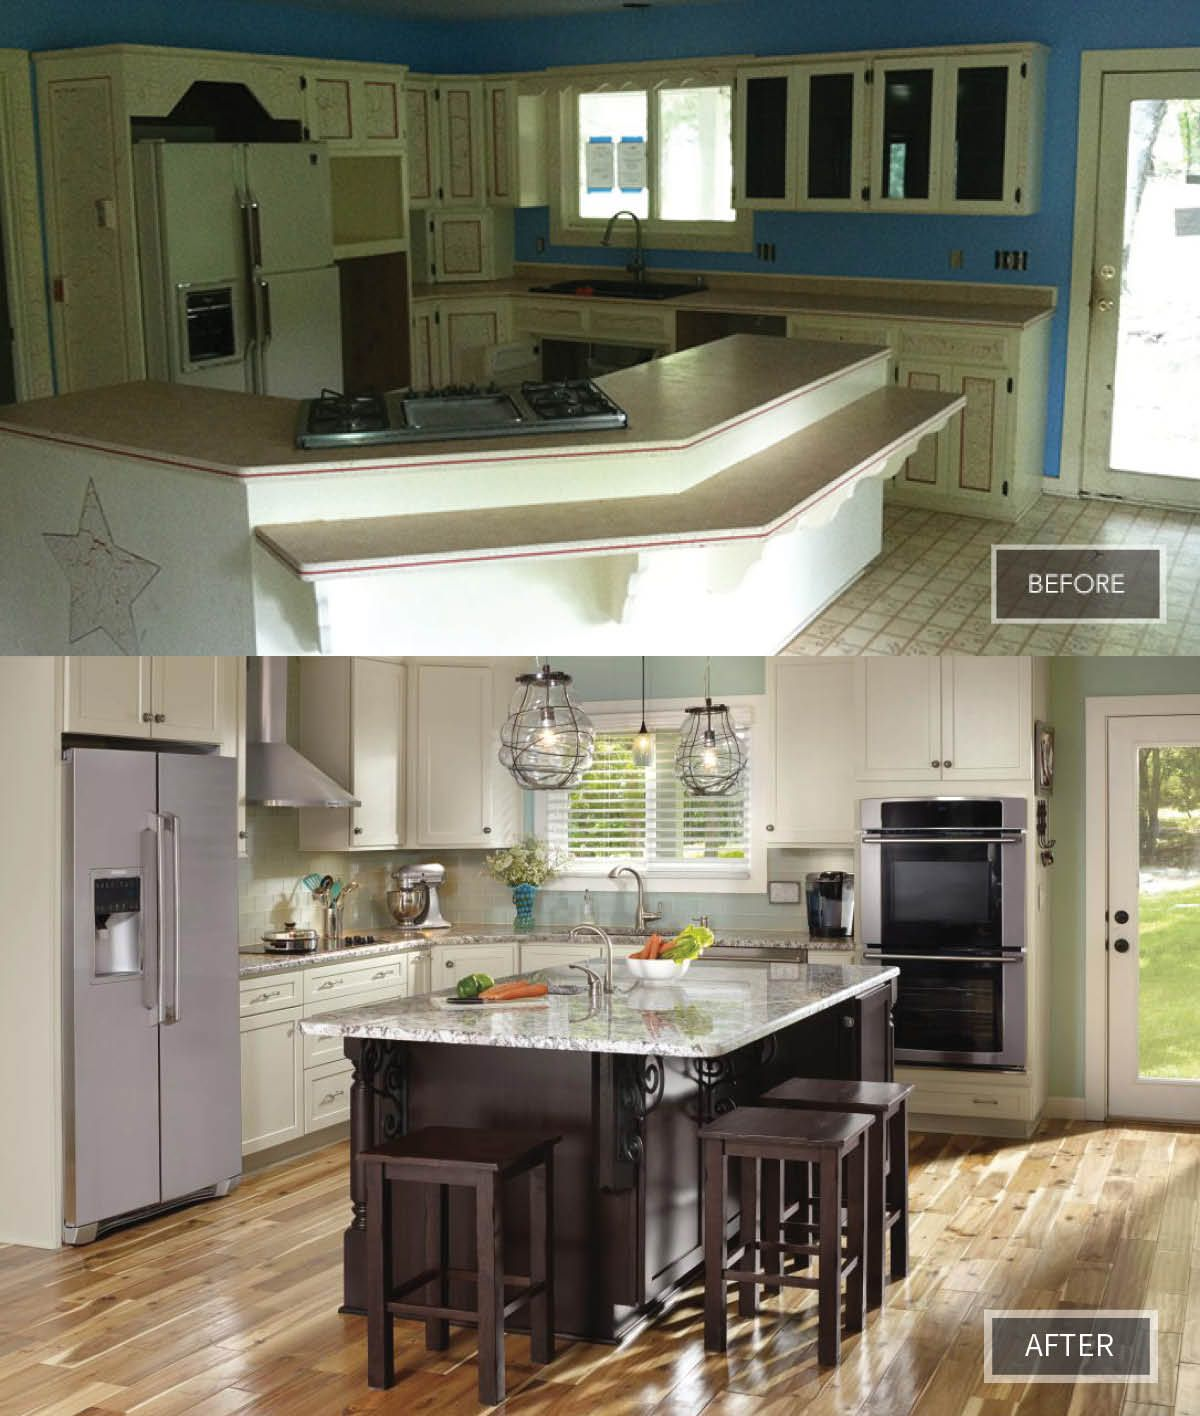 This Previously Closed Off Kitchen Was Uninviting And Outdated The Homeowners Opted For A New Open Concept F Kitchen Facelift Open Concept Floor Plans Kitchen